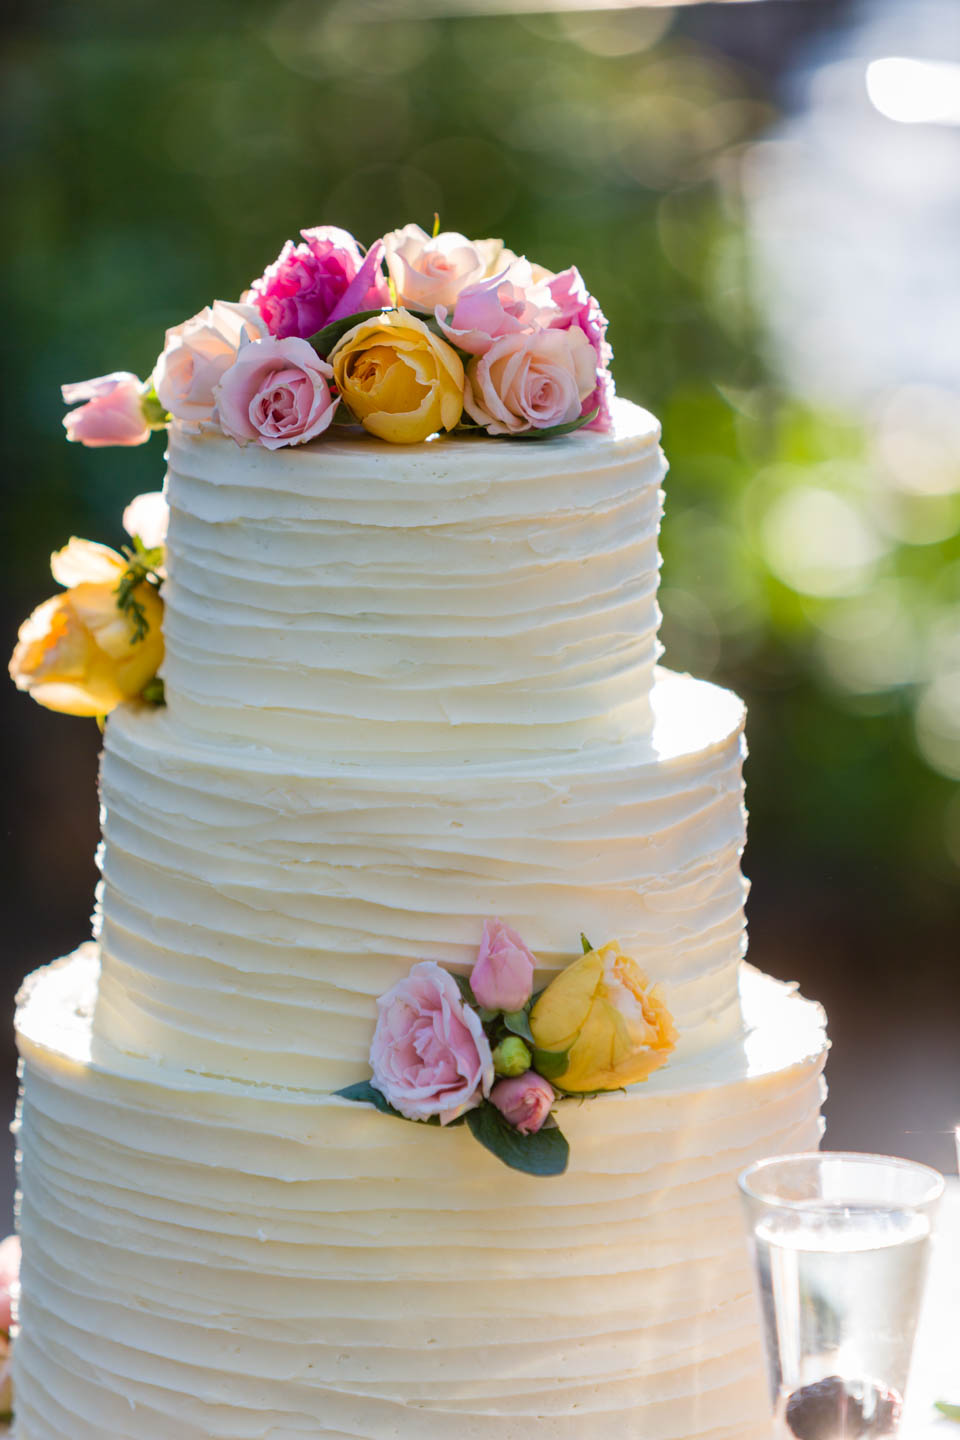 Natural light photography for this wedding cake